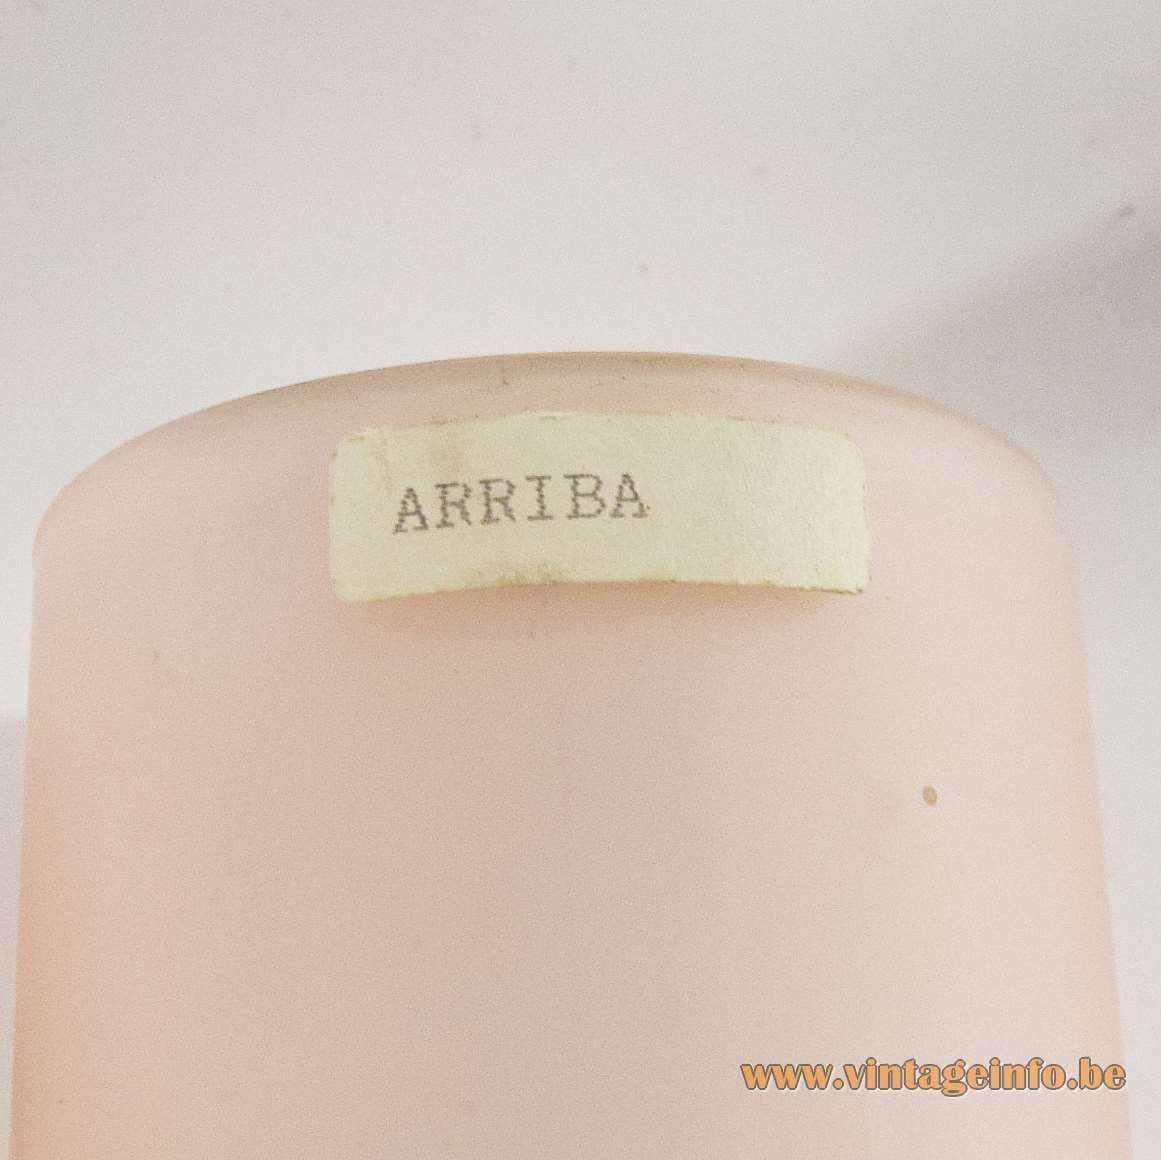 Evaluz Arriba Wall Lamps - Arriba label